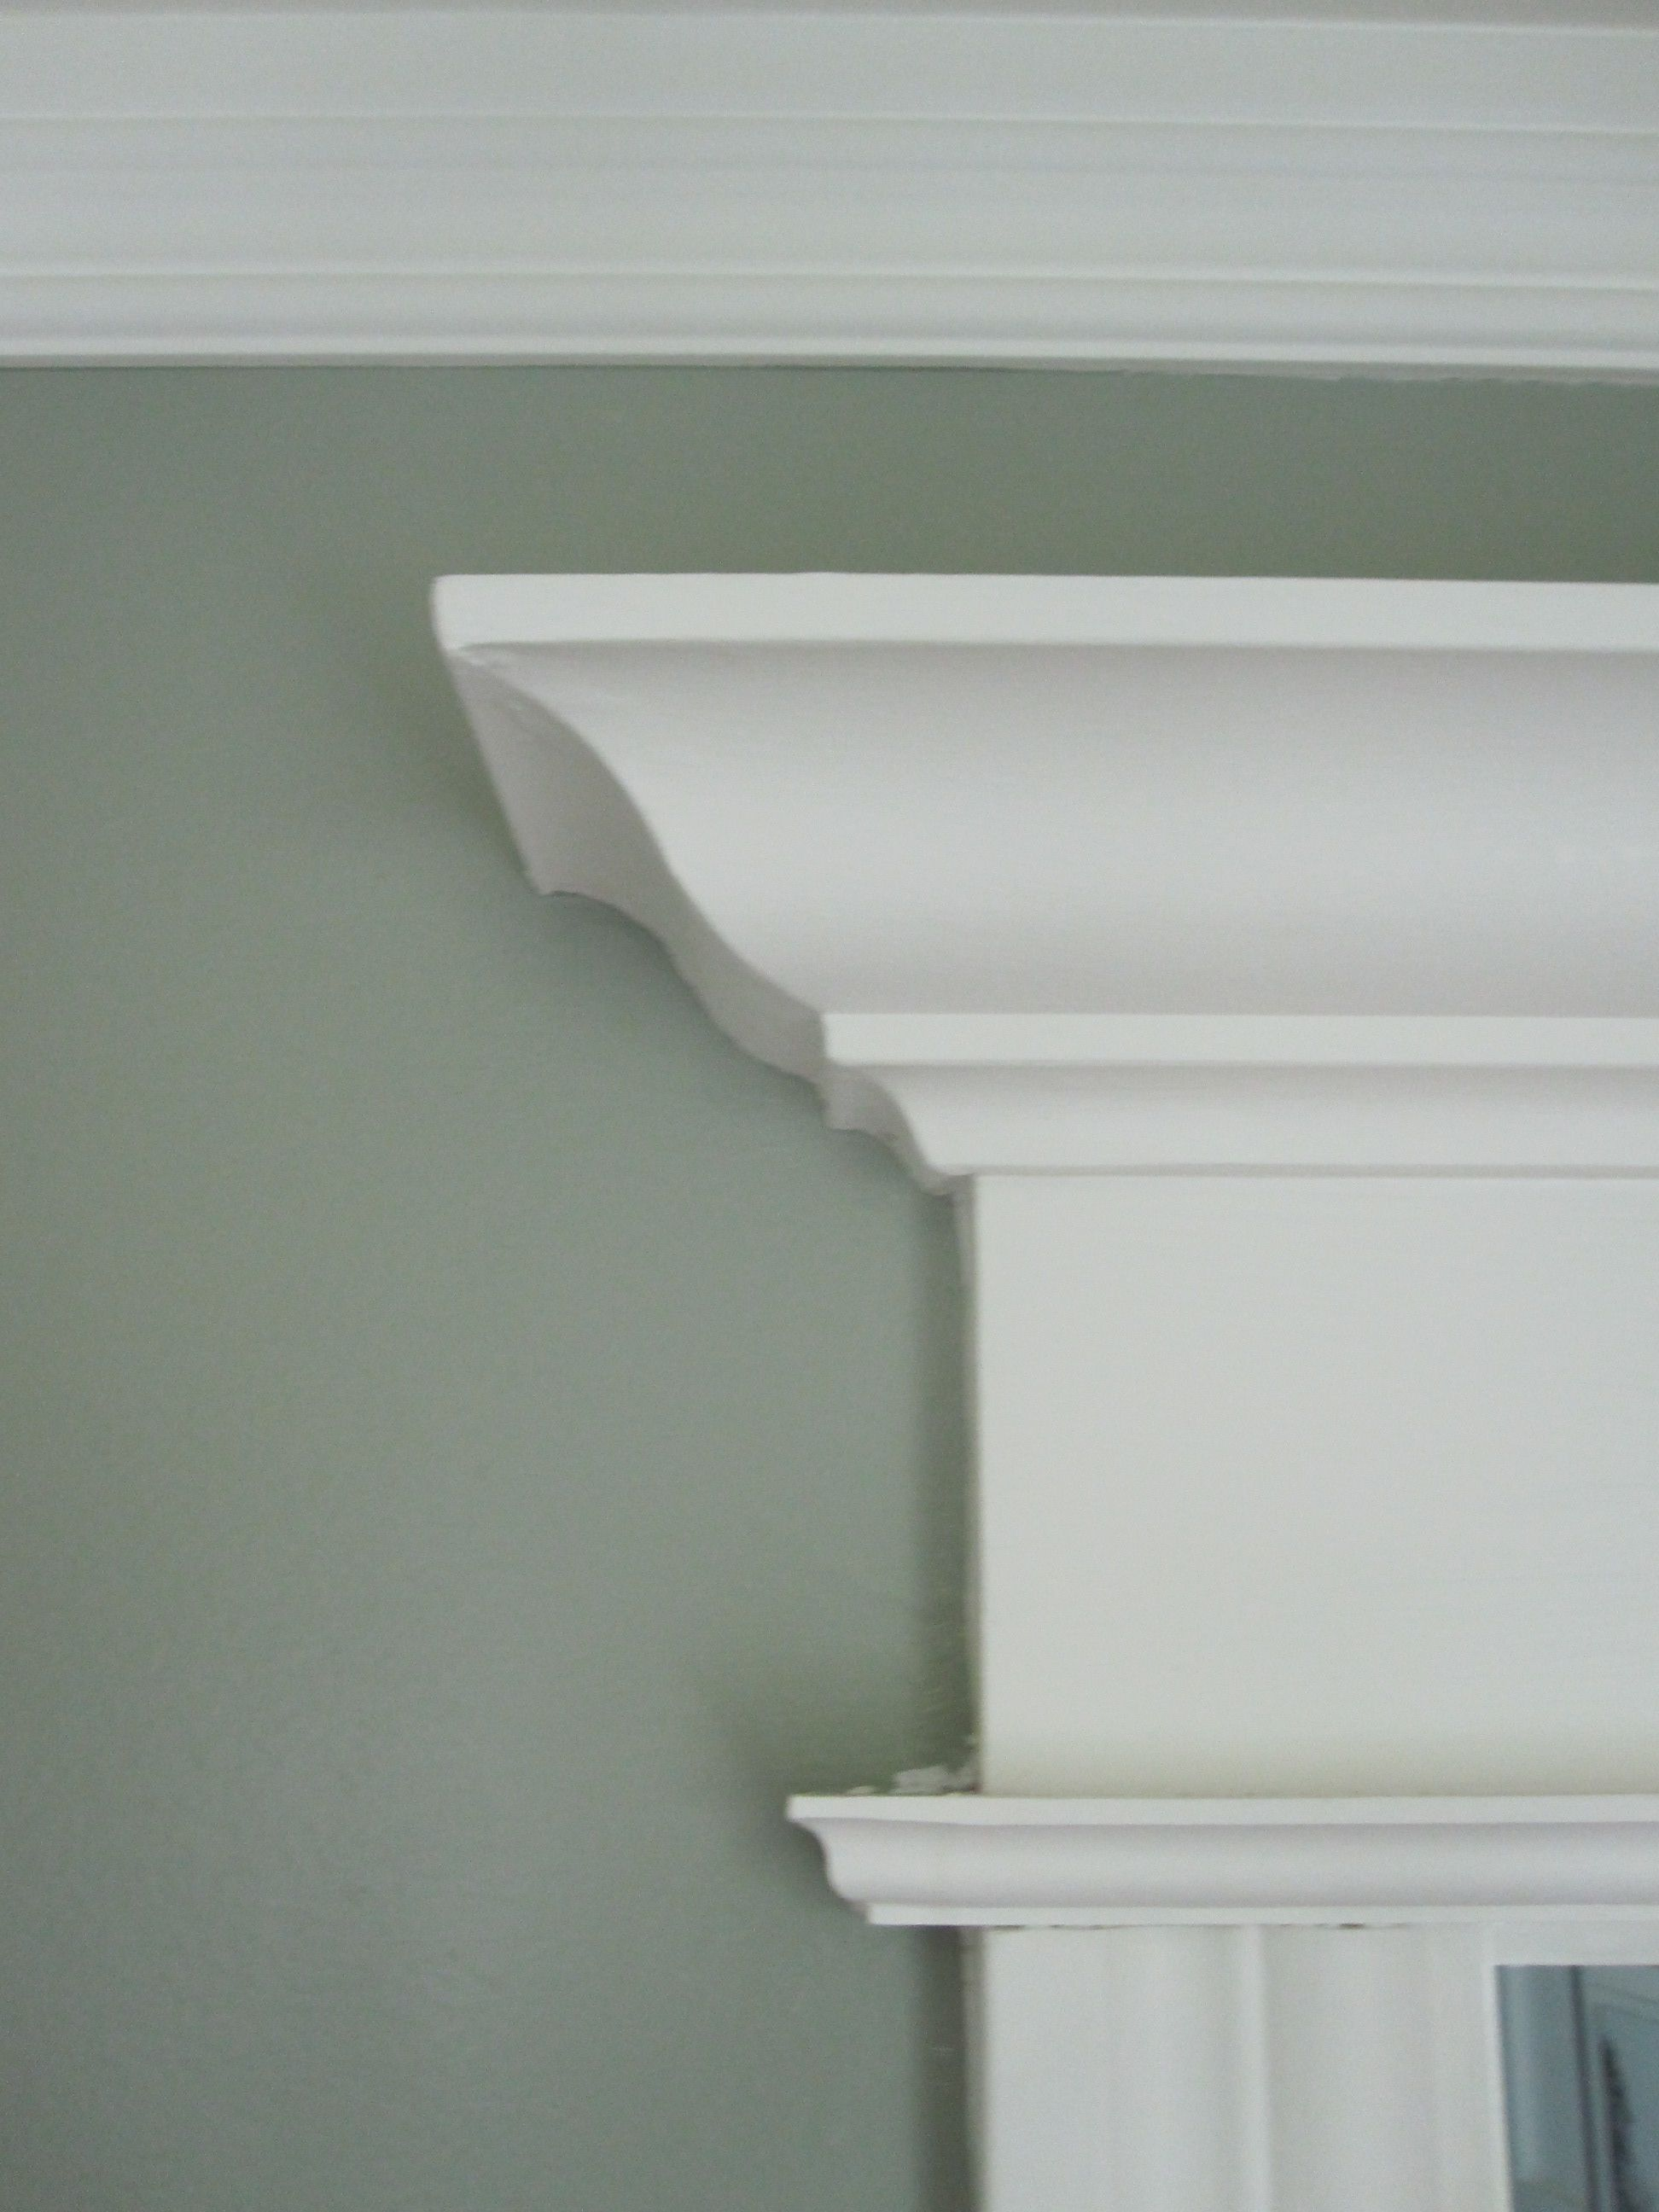 Moulding Trim Mouldings Crown Moulding For Door Toppers And Other Trims